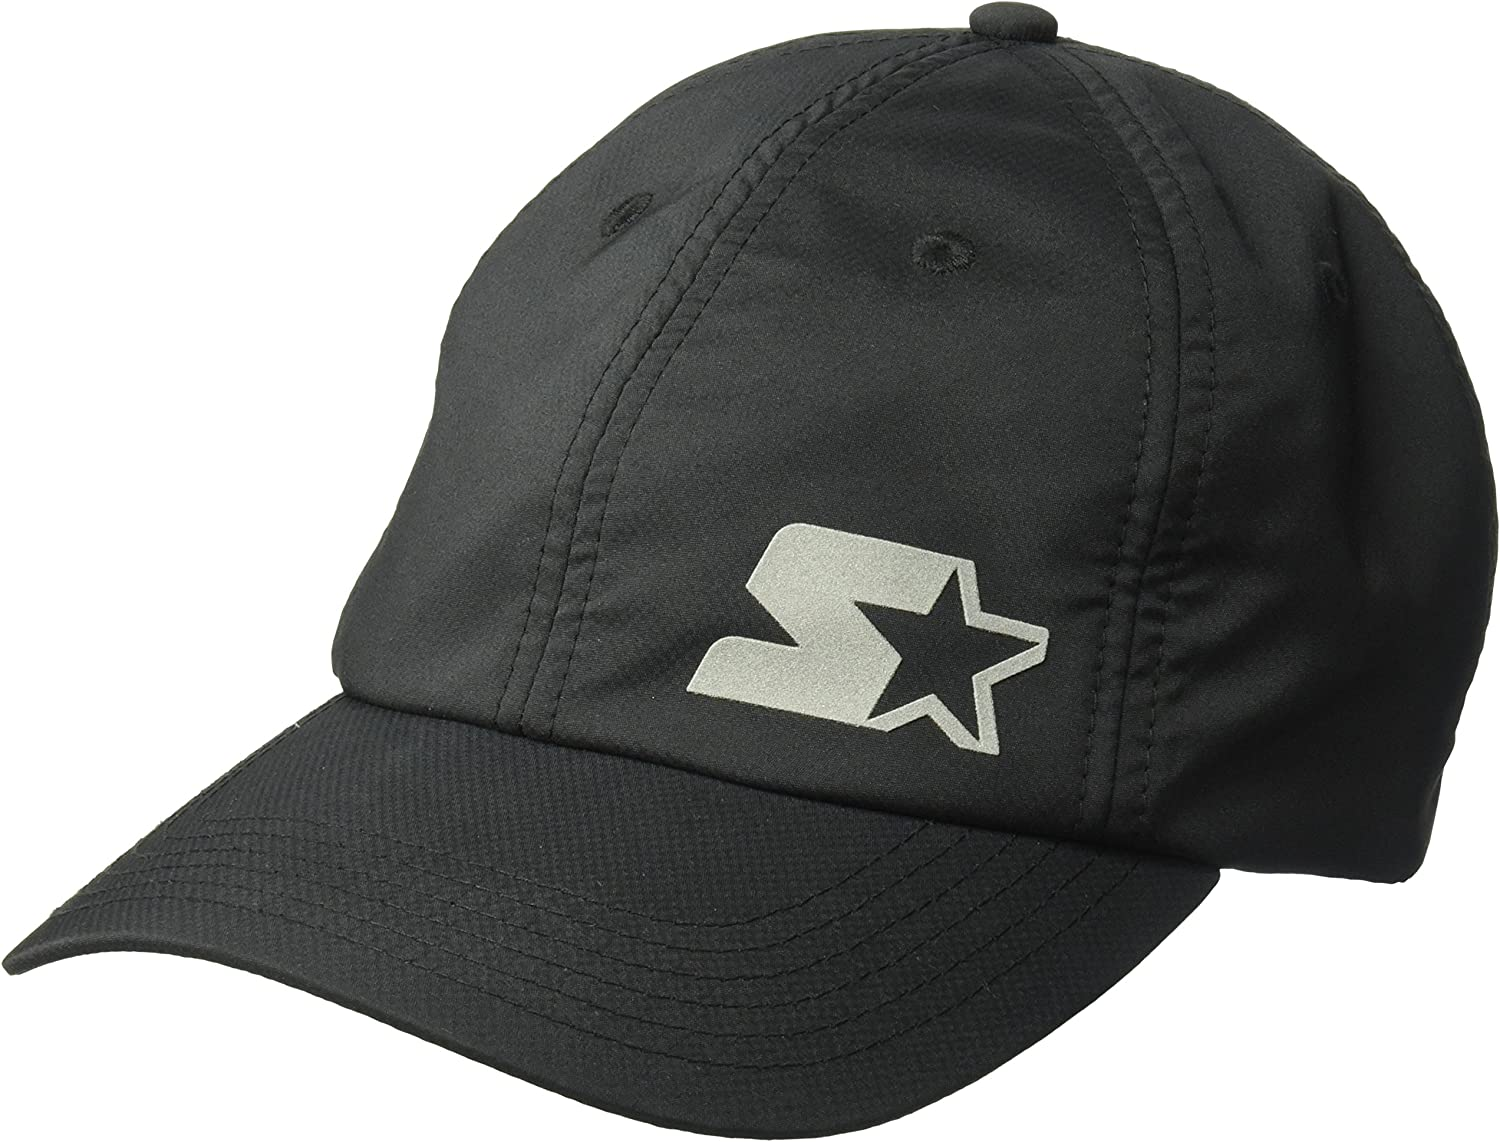 Starter Women's Performance Cap with Wicking and Built-in Headband, Amazon Exclusive